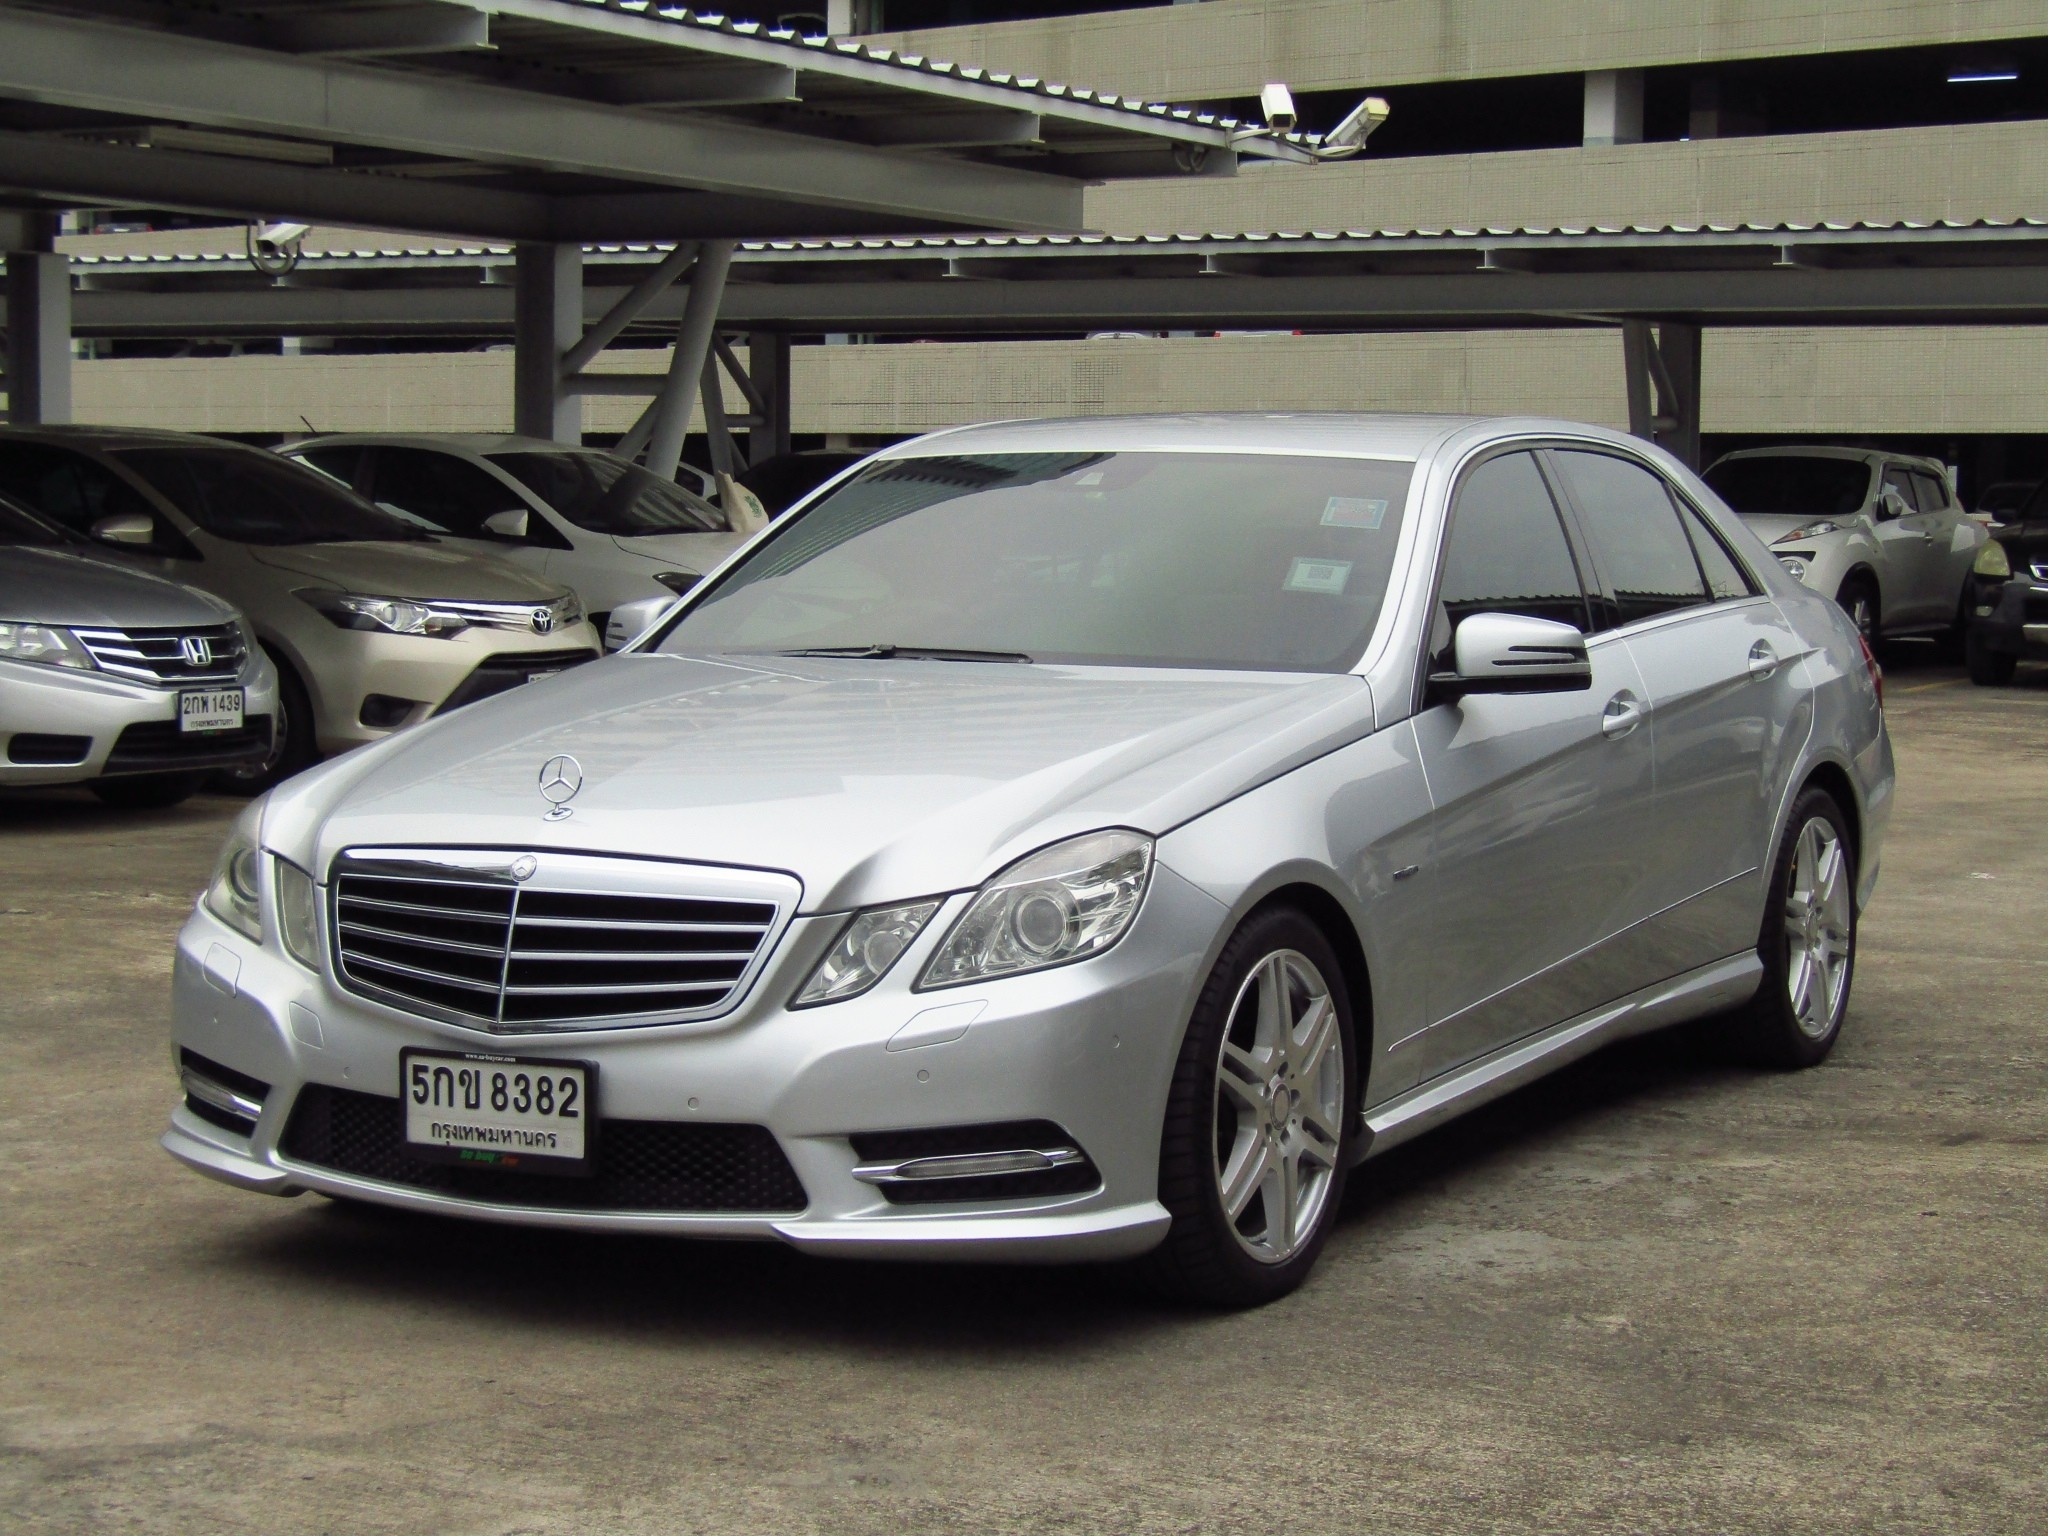 MERCEDES BENZ E250 CGI BlueEFFICIENCY AVANTGARDE SPORT AMG